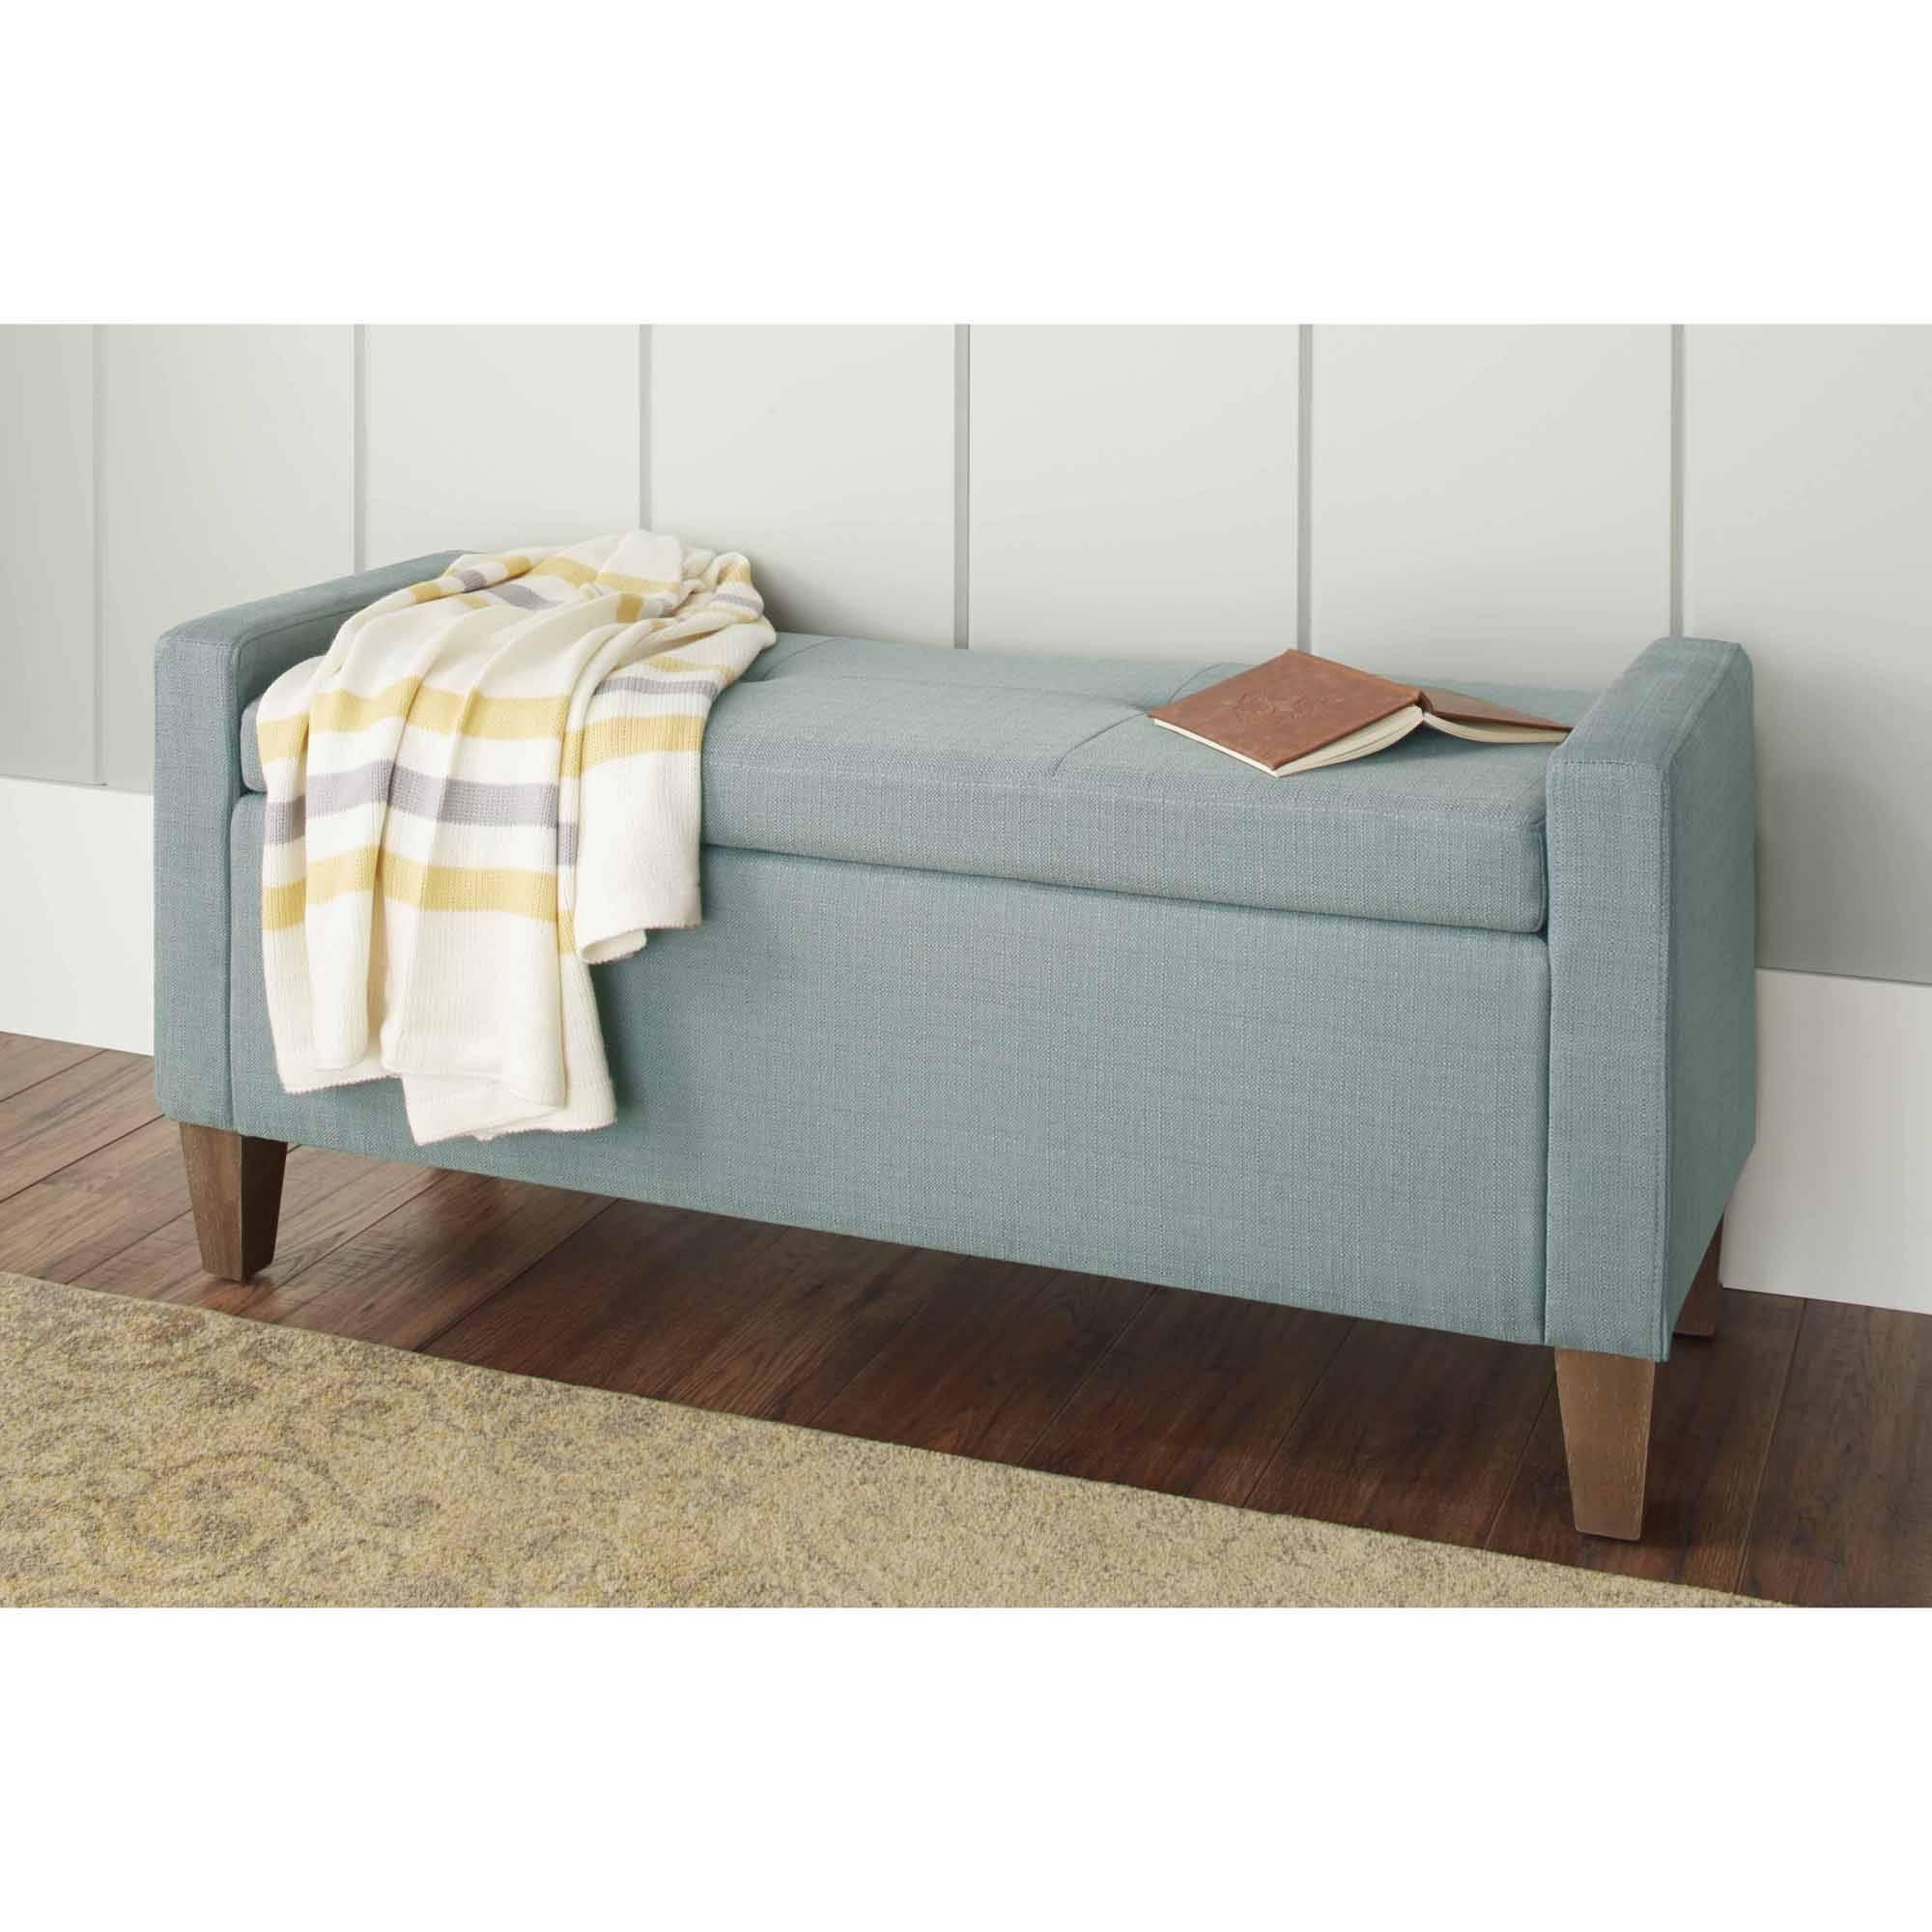 cfm reagan hayneedle living of shelf with belham belhamlivingreagantuftedbenchwithshelf foot master bench tufted bed for product